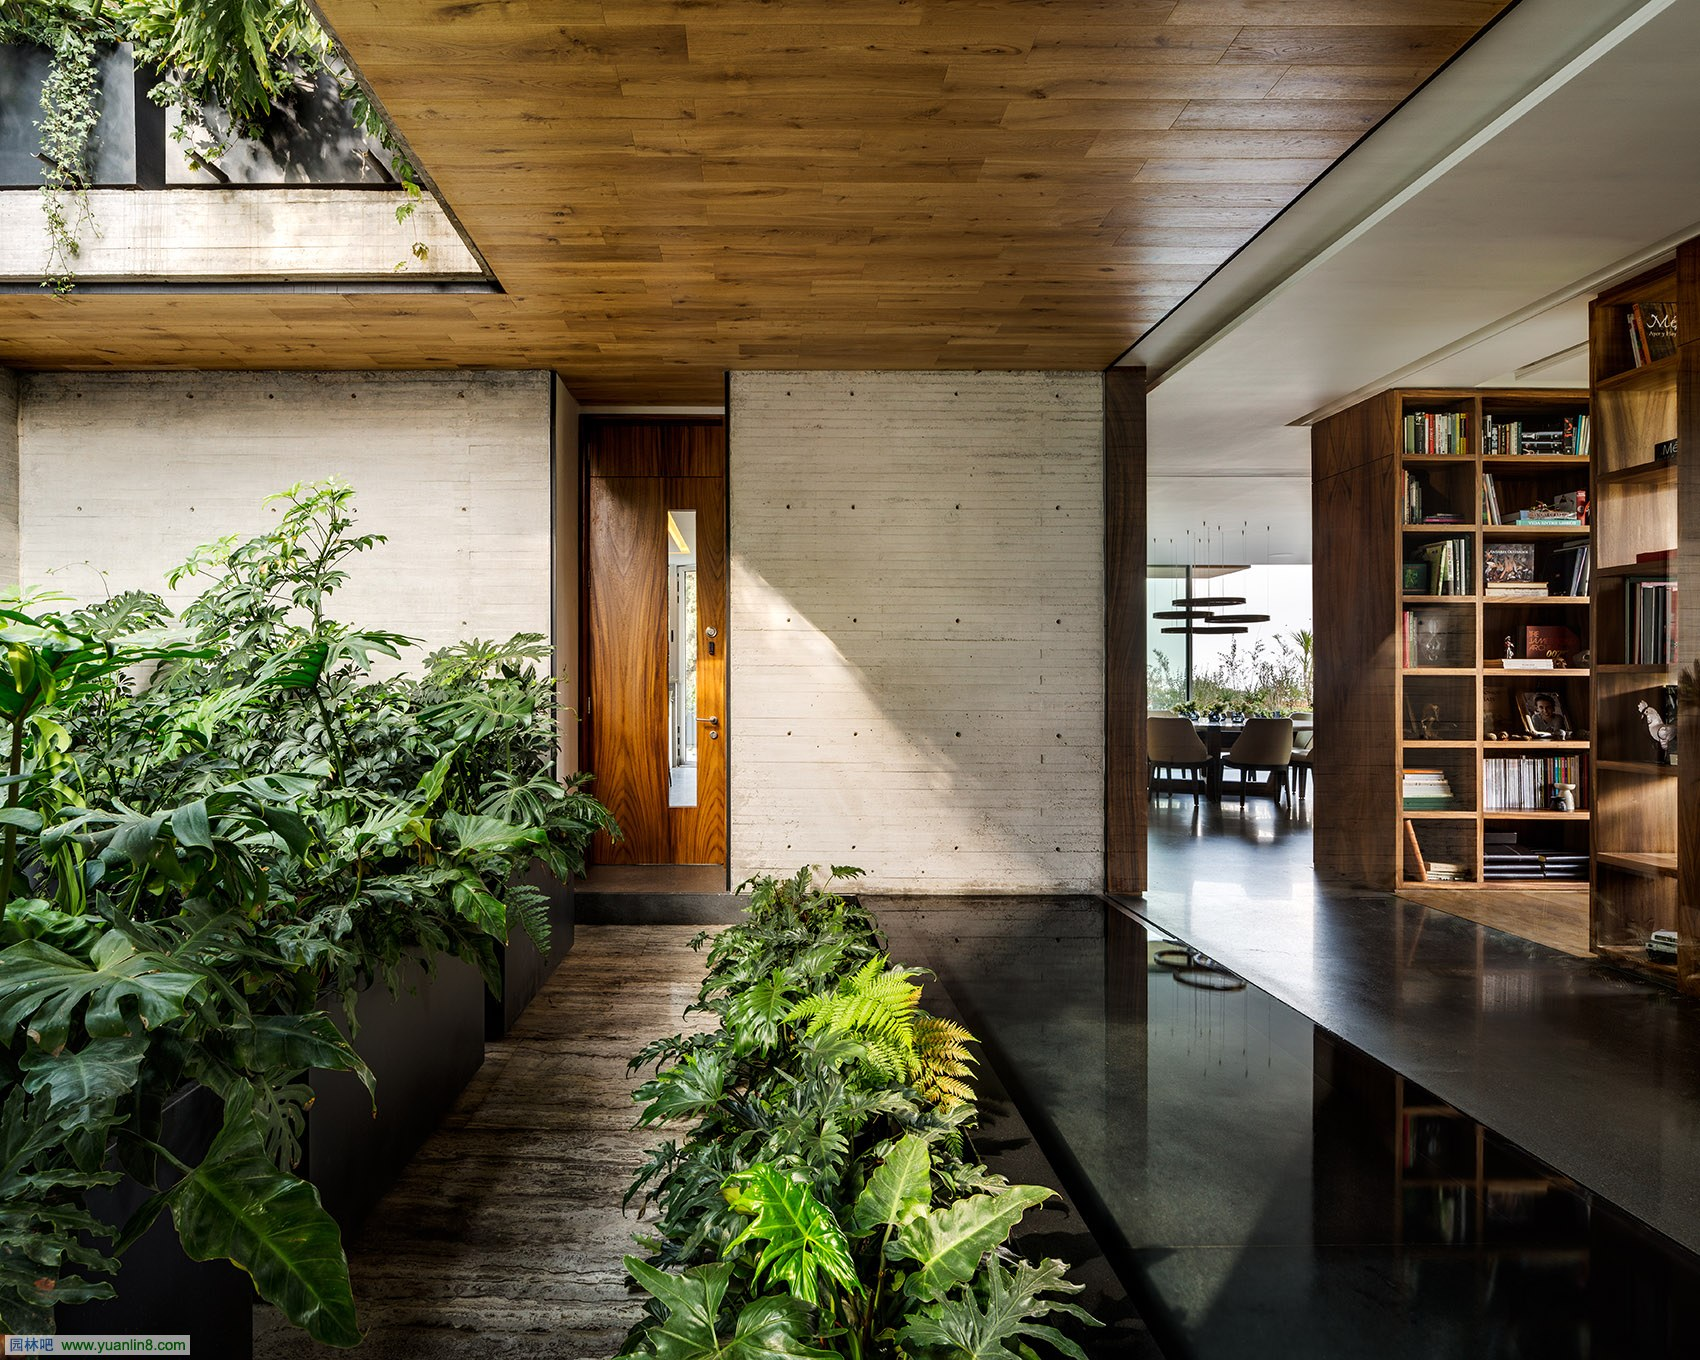 3house-p29-by-vgz-arquitectura